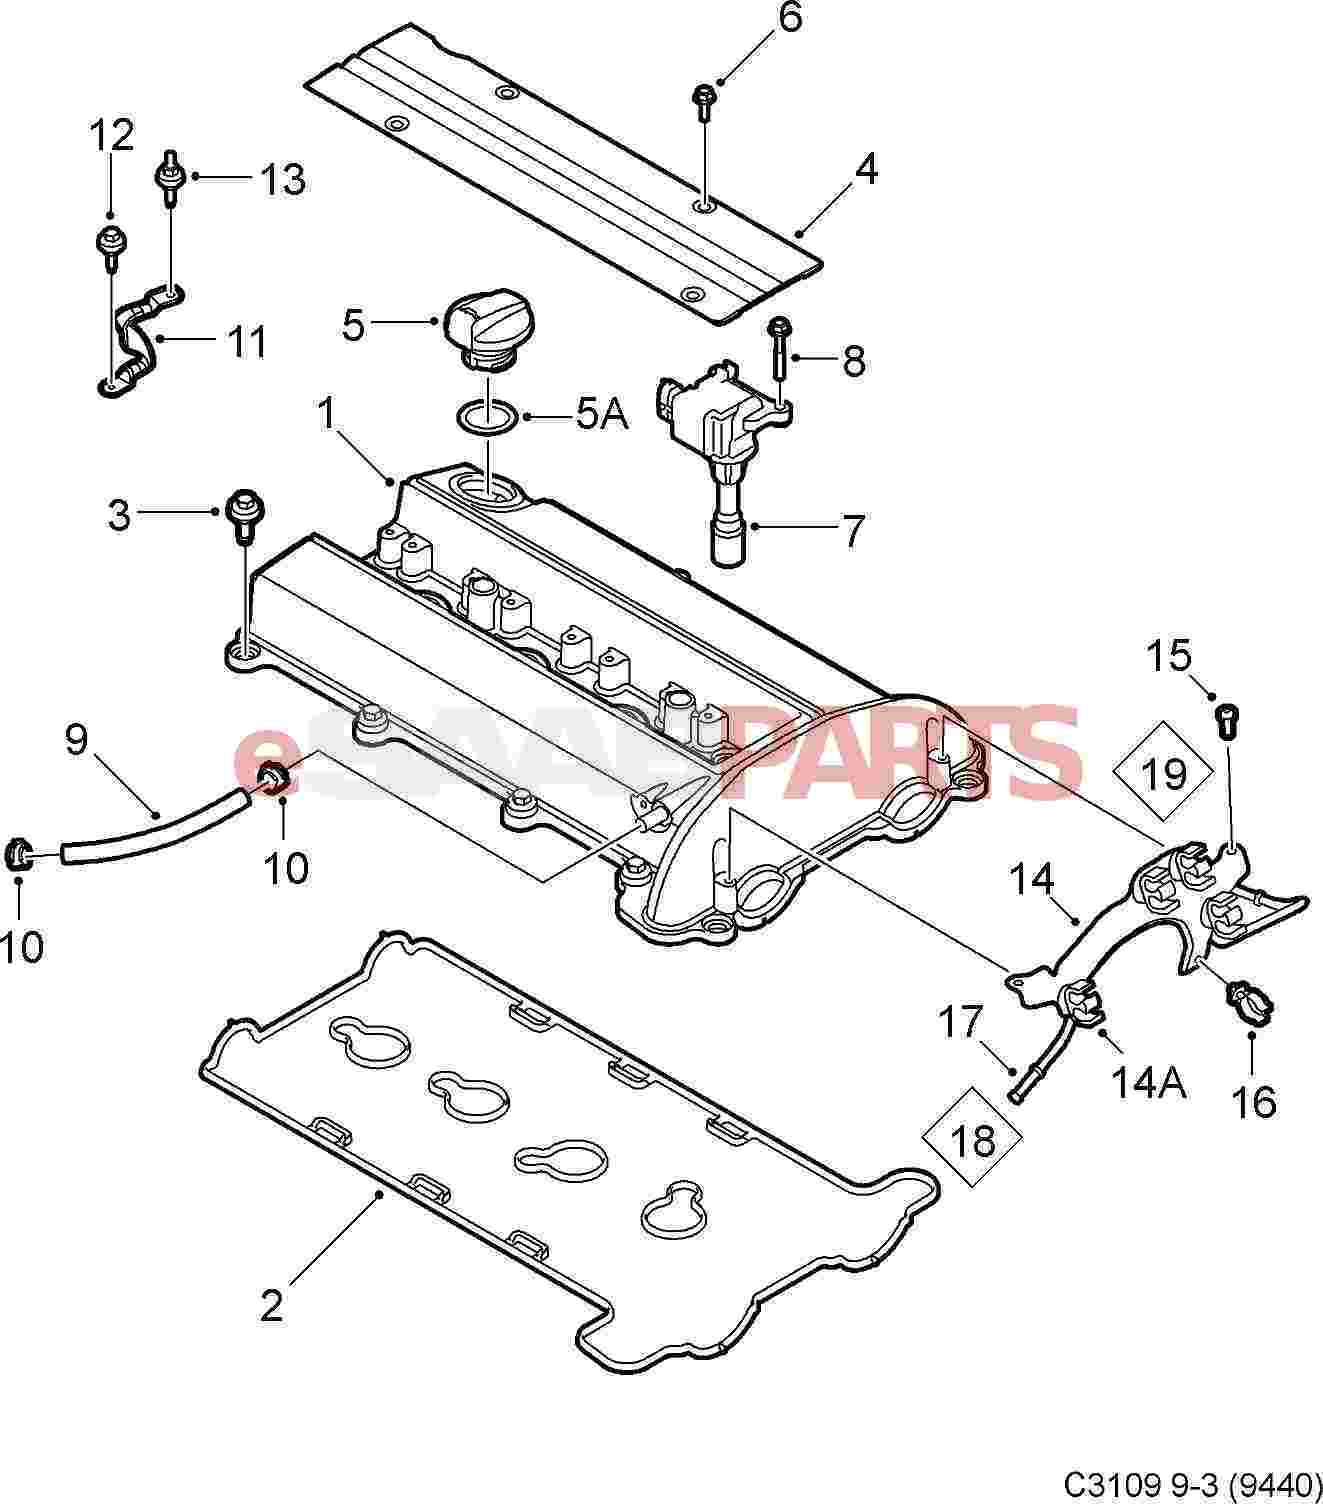 hight resolution of esaabparts com saab 9 3 9440 engine parts valve cover valve cover 2 0l b207